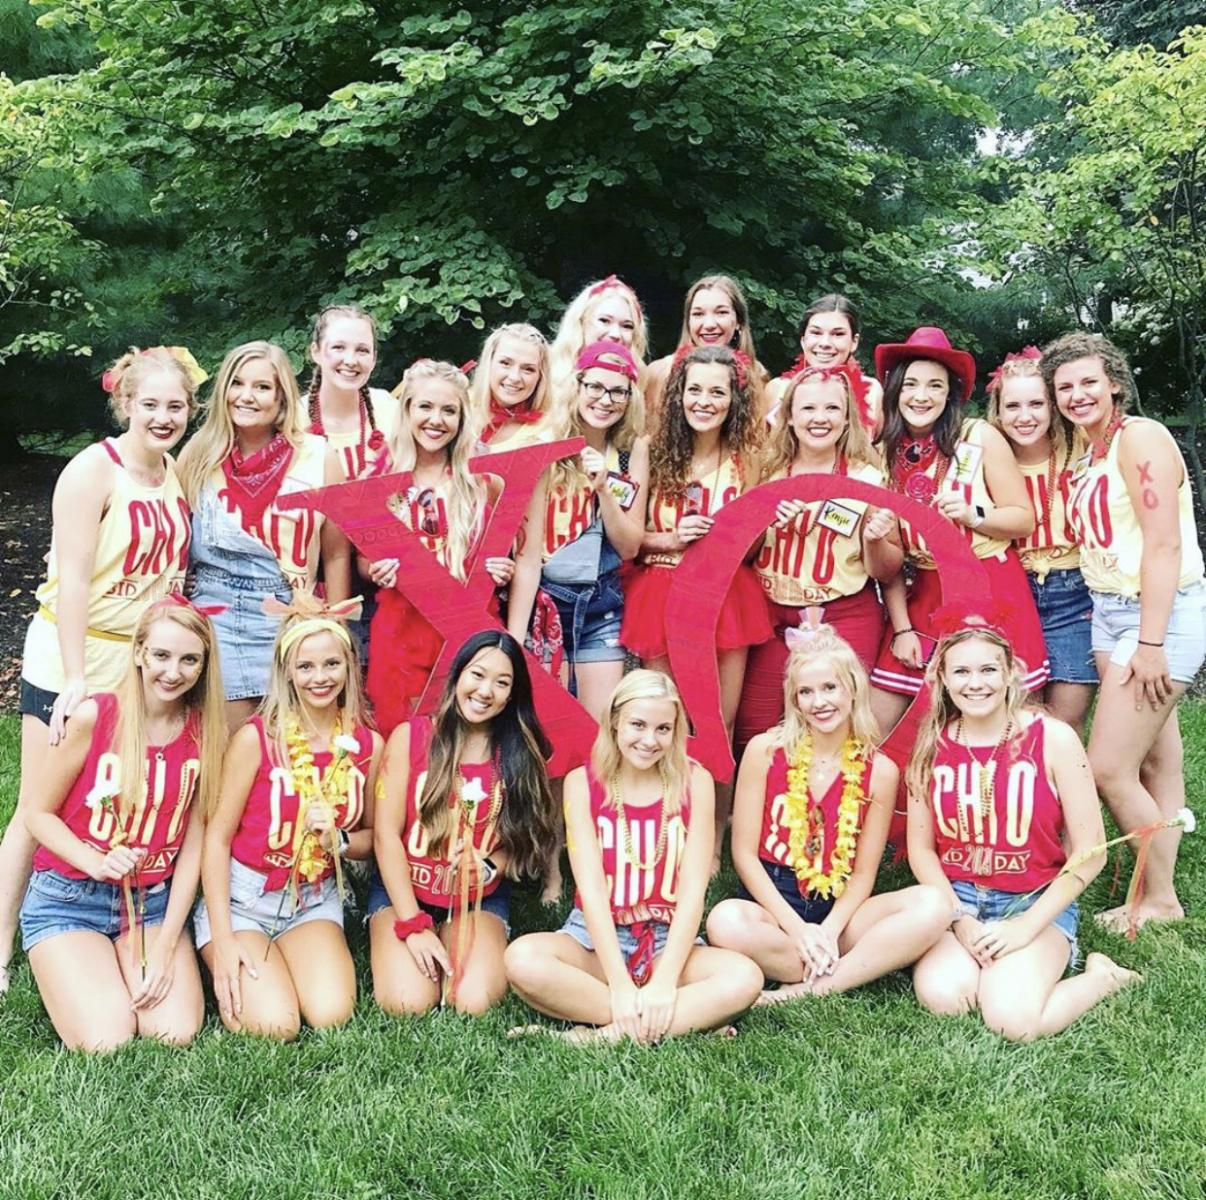 CASNR students in Chi Omega on Bid Day